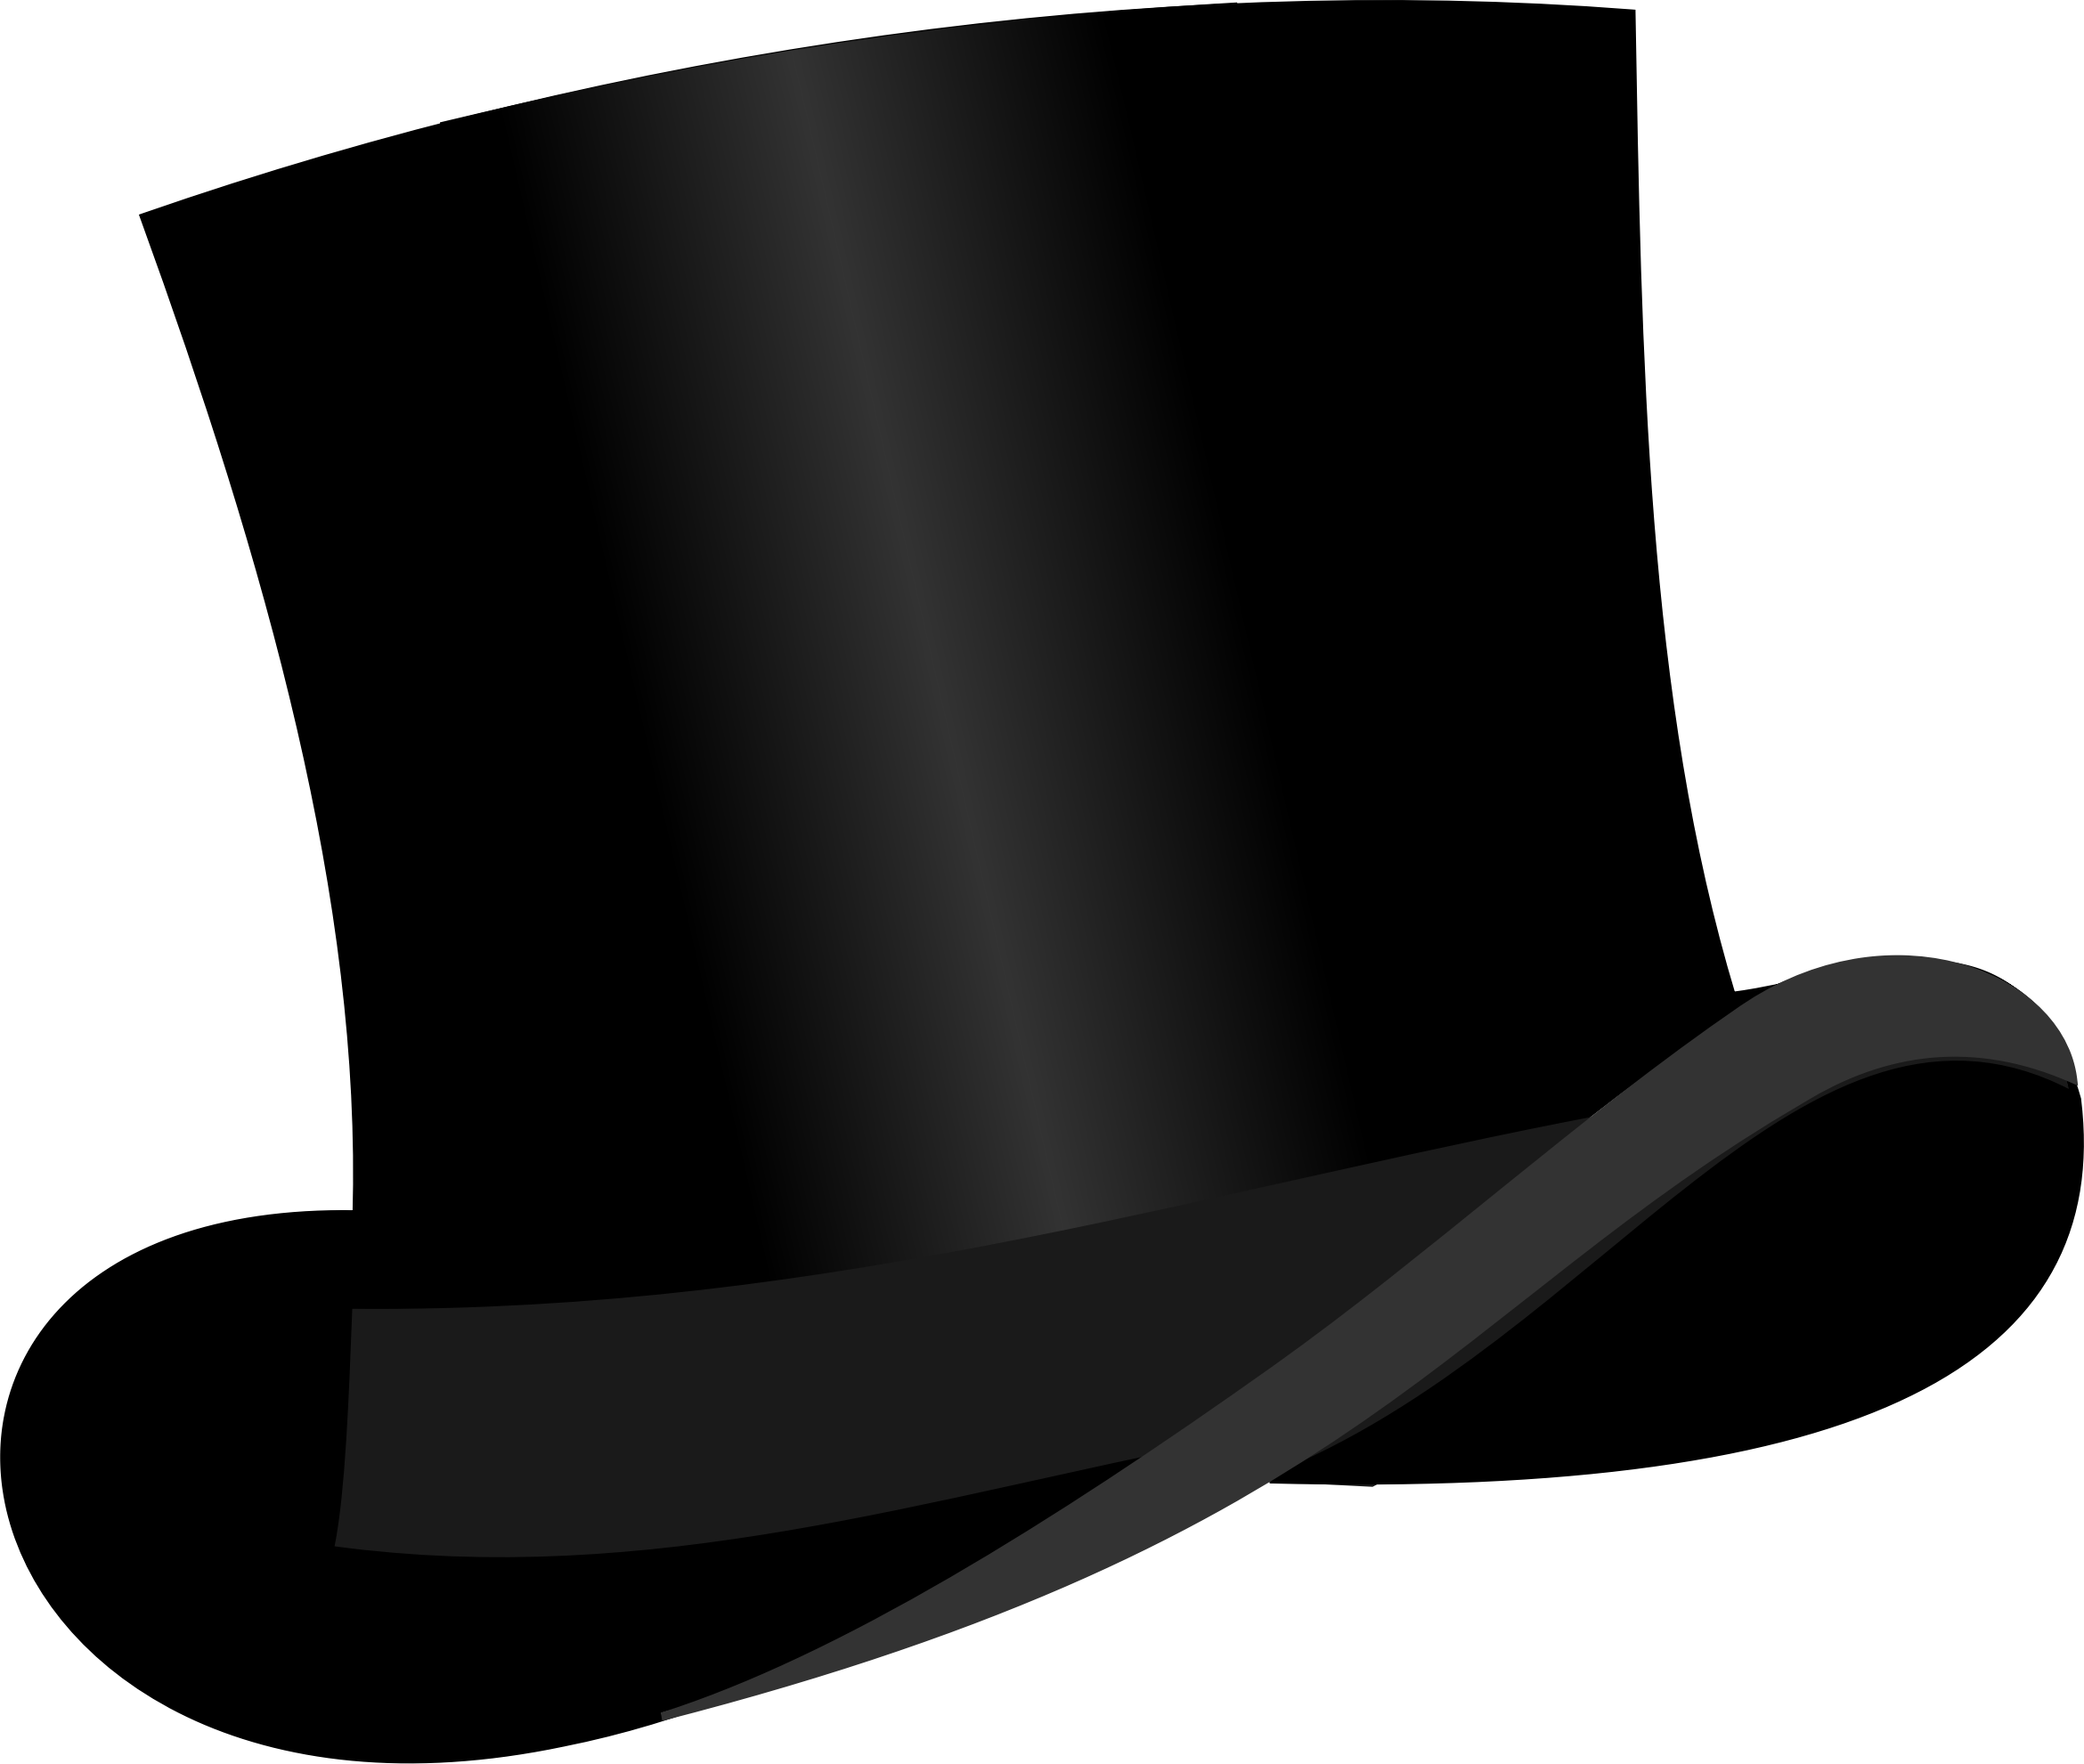 svg free download Bowler Hat Silhouette at GetDrawings